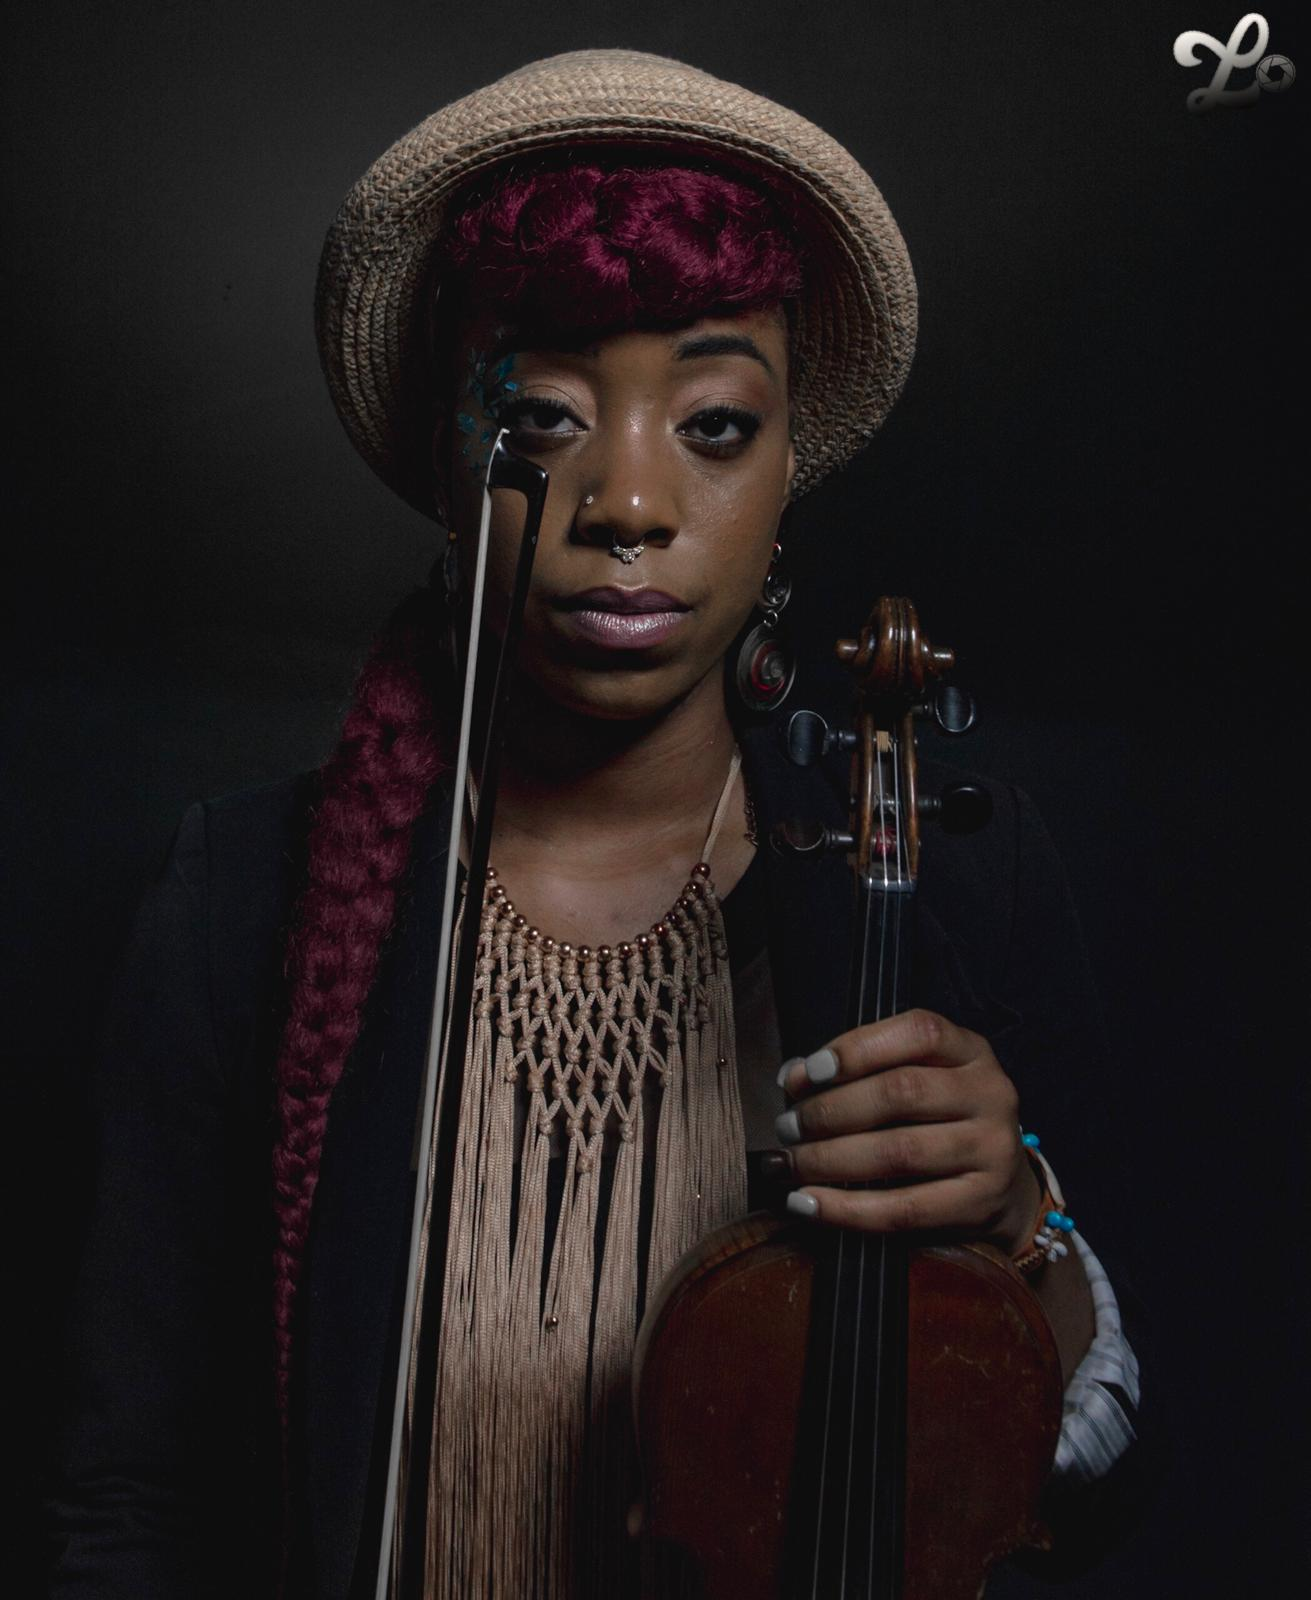 Somer Jordan - Violin - Somer Jordan, the former Miss Black America Pennsylvania 2017, is a 24 year old Philadelphia native and an Eastern University alumni, with a B.A. in Entrepreneurial Studies. She's not only played violin for 17 years, but can also sing, rap, and is a phenomenal songwriter. With music playing such a significant role in her life, Somer believes God has used her musical ability to open many doors for not only herself, but also for young world changers to be inspired through her incredible story. Somer has overcome childhood abuse, youth homelessness, and the recent loss of her mother to Metastatic Breast Cancer. Her resilience has shined through her faith, art, mentoring, and entrepreneurial spirit.